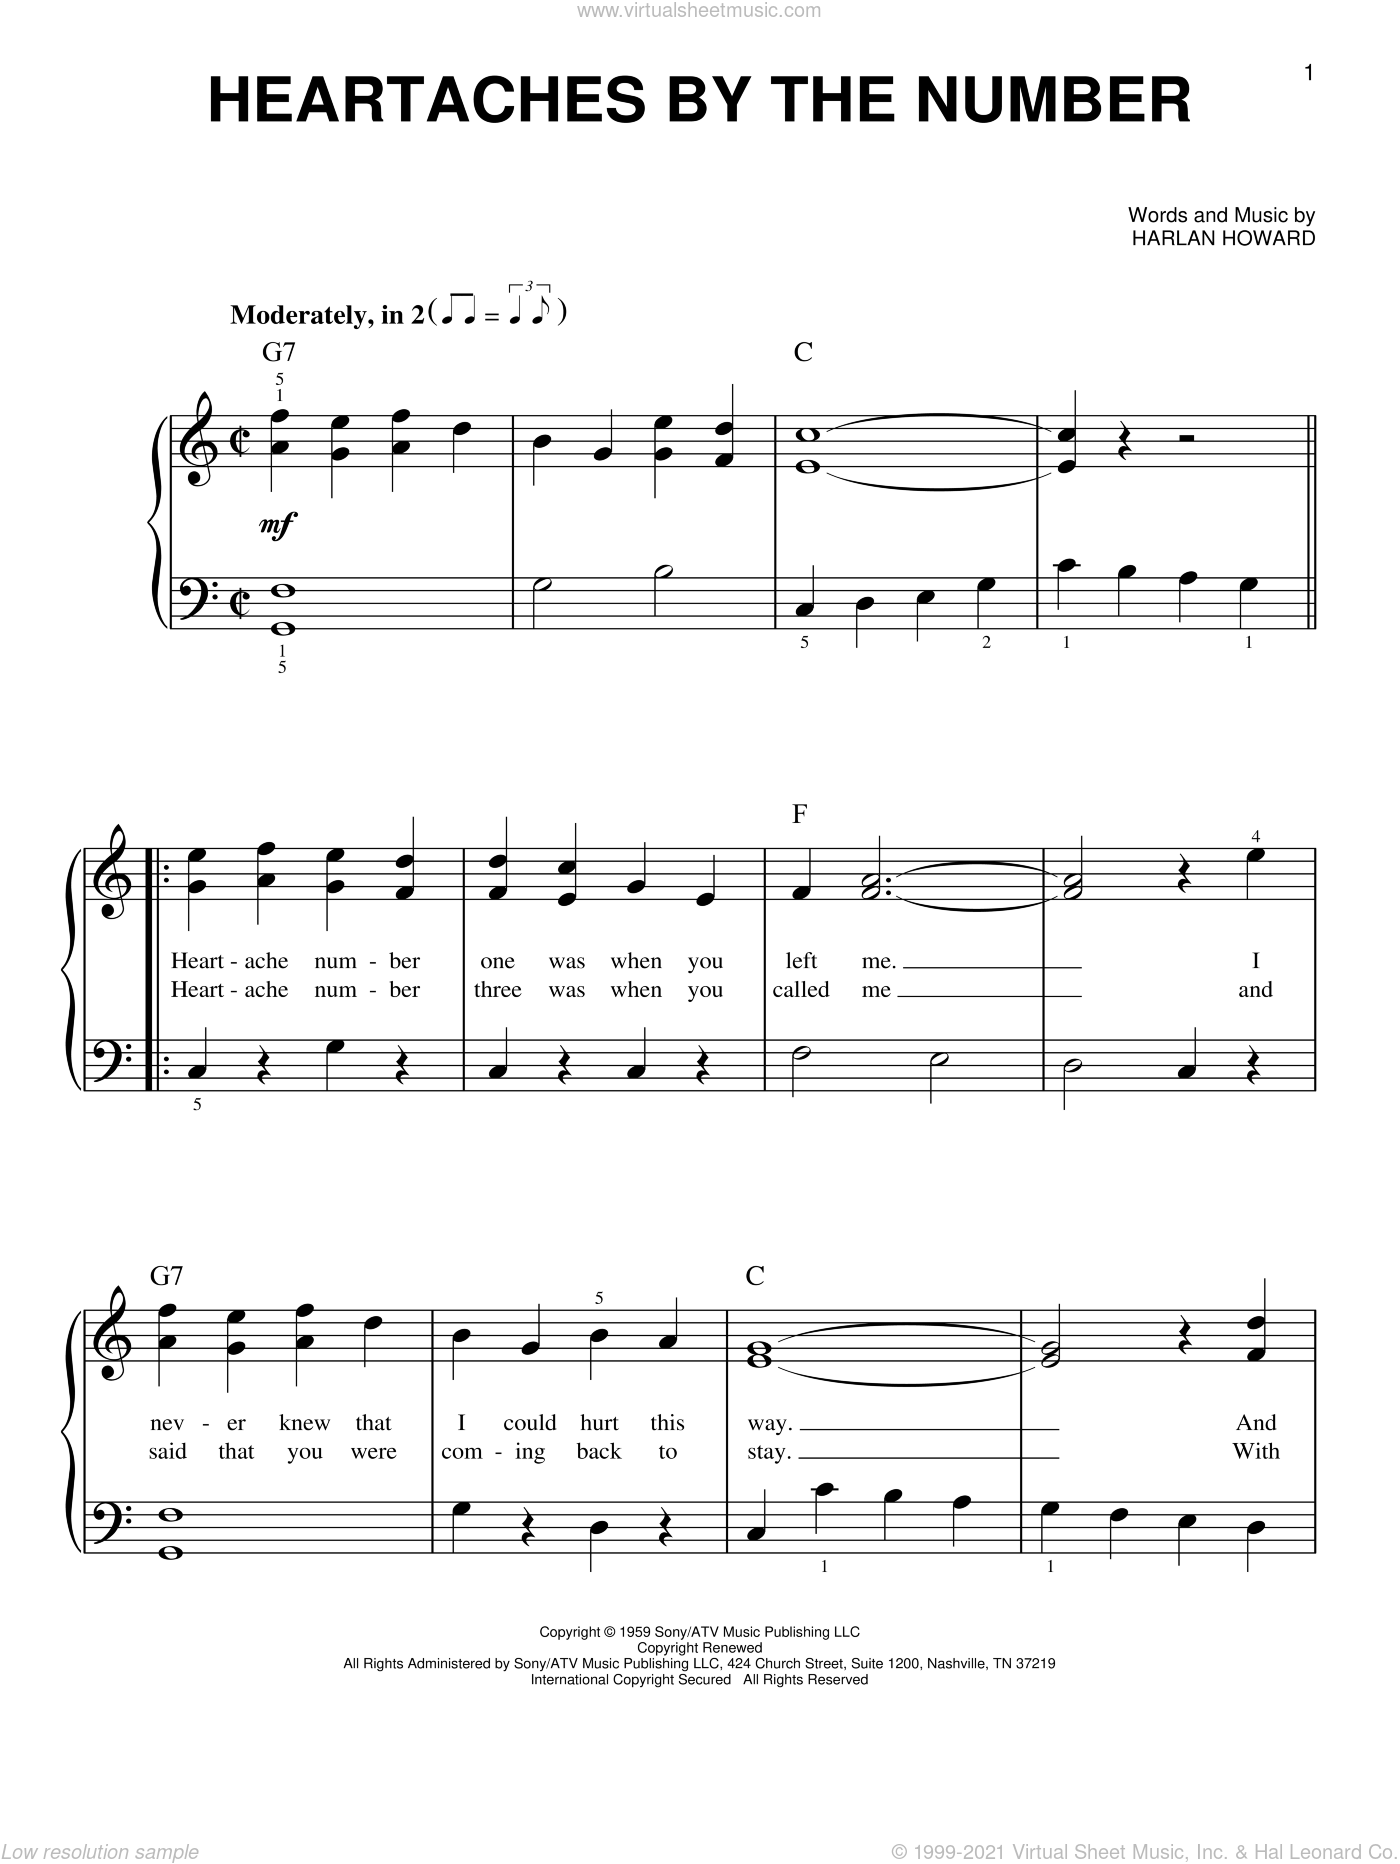 Heartaches By The Number sheet music for piano solo by Ray Price, Guy Mitchell and Harlan Howard, beginner skill level